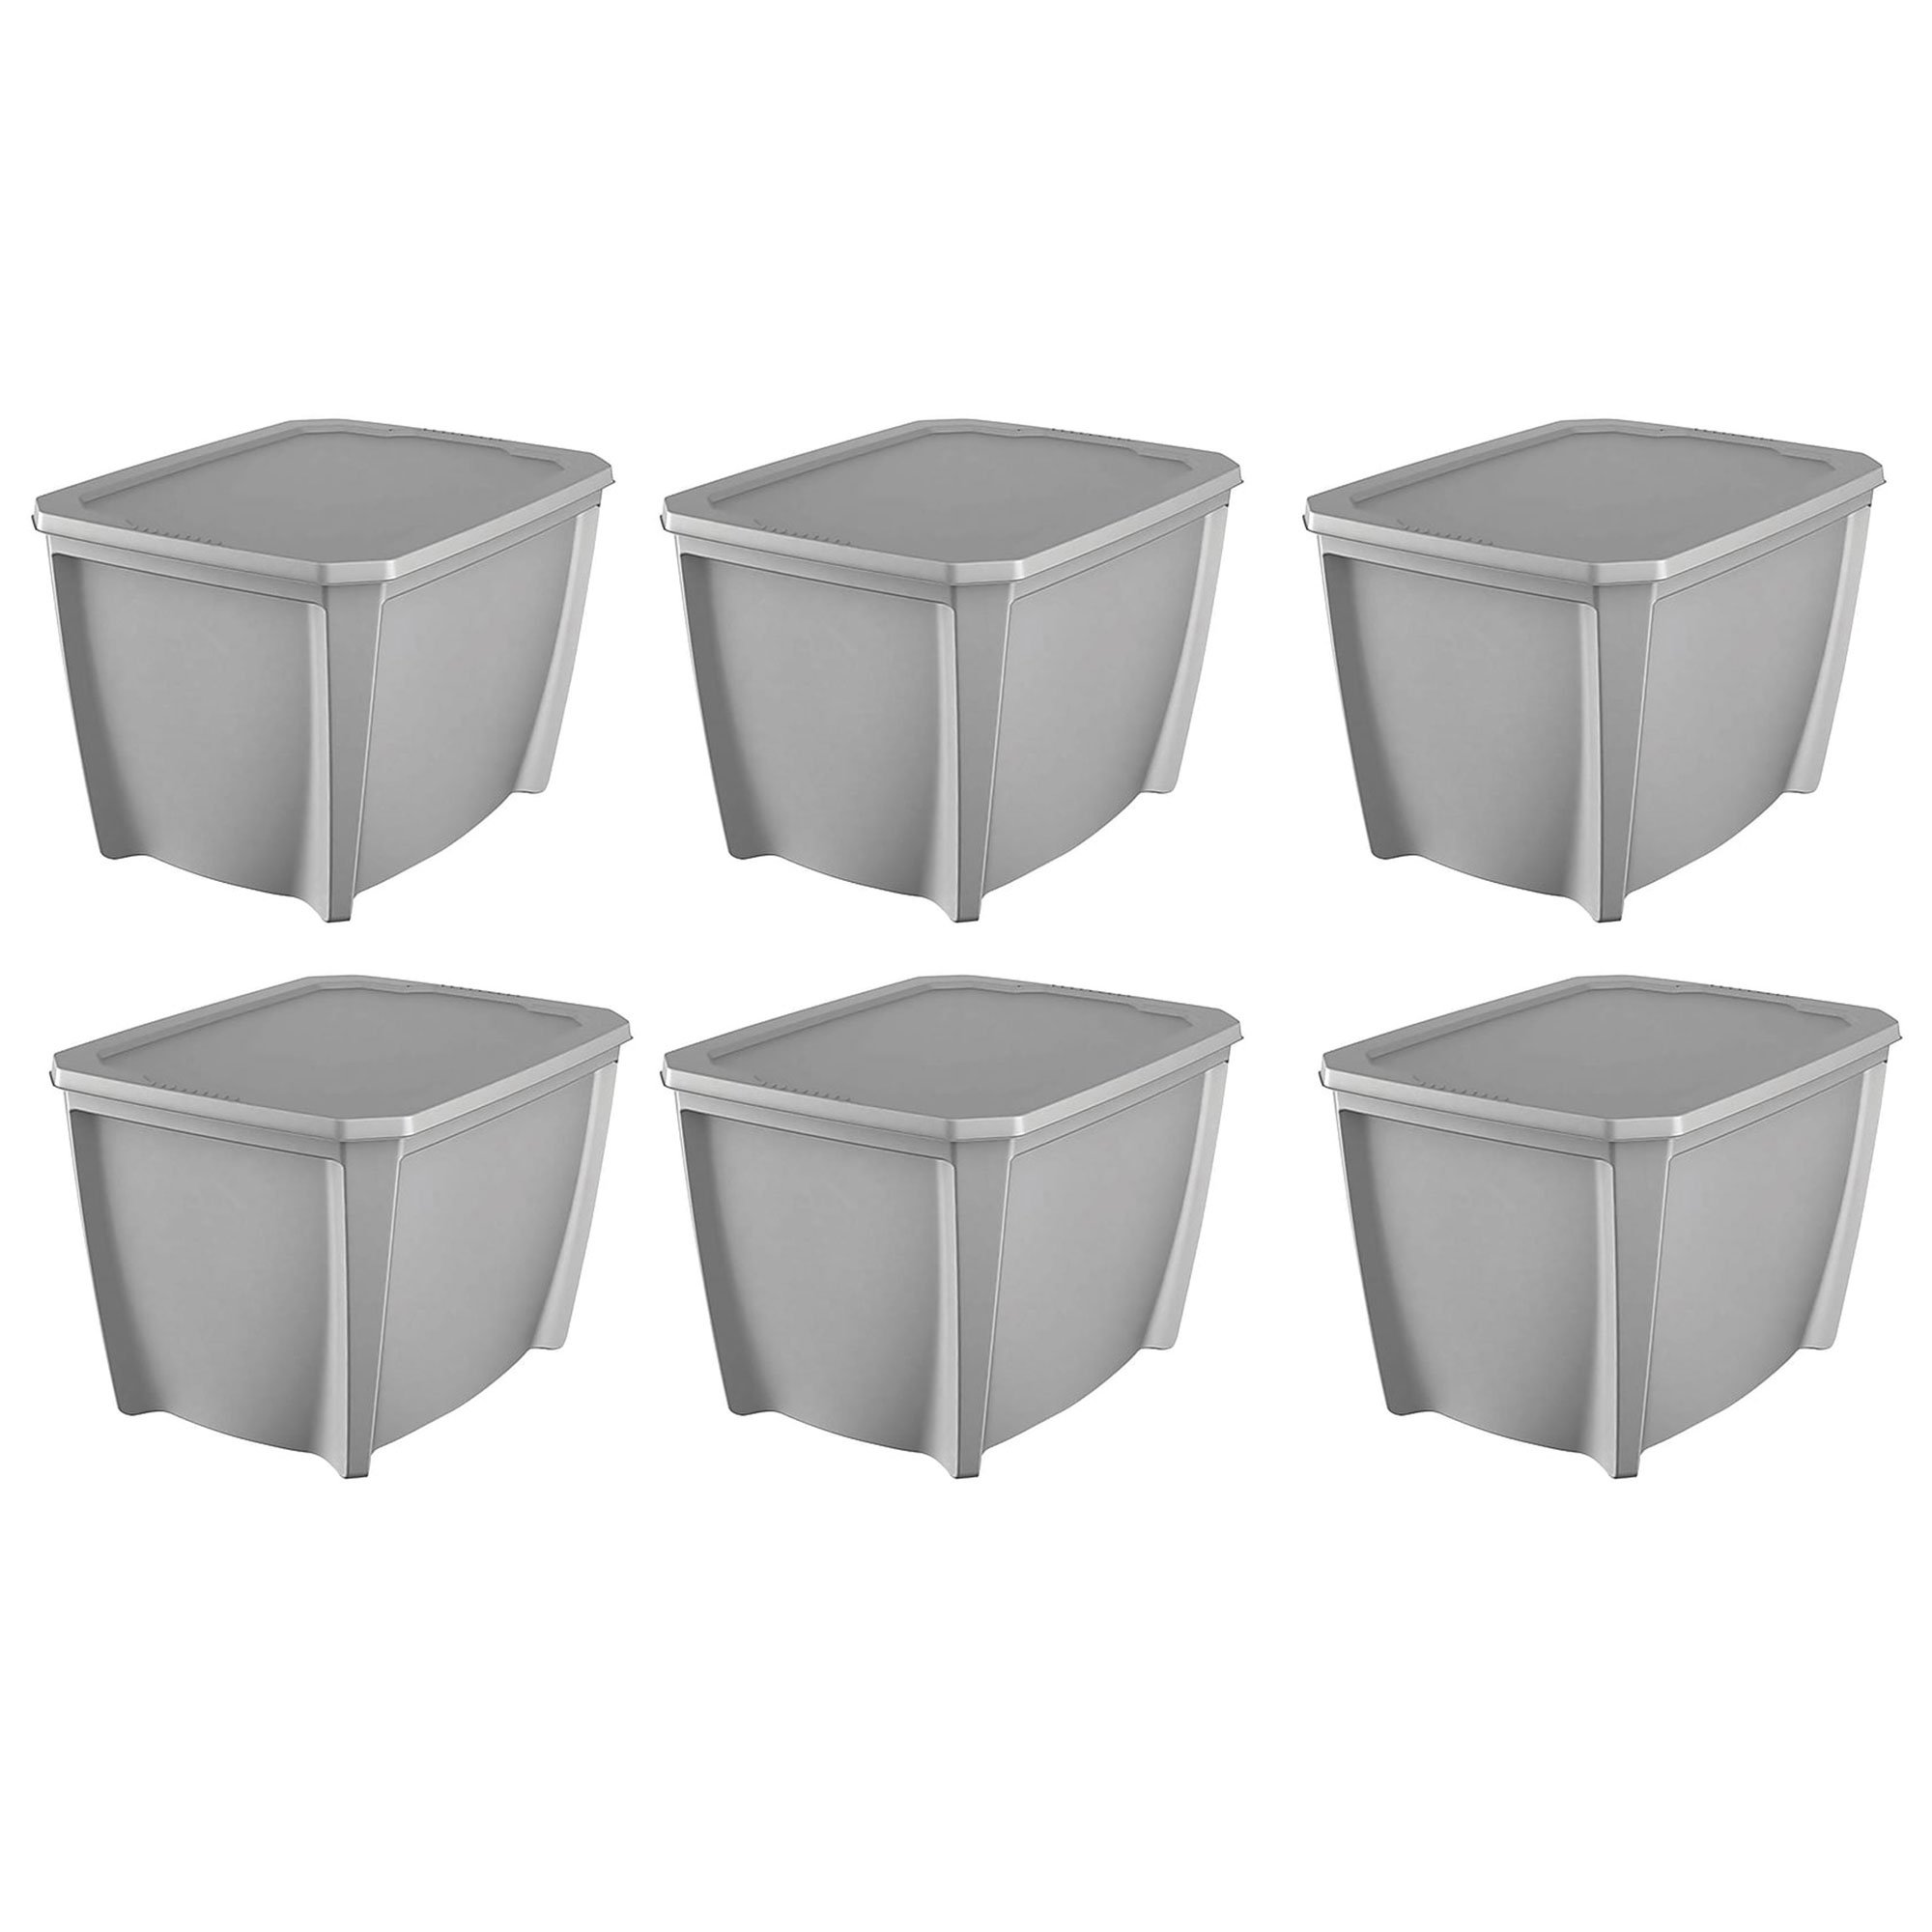 Life Story Gray Stackable Organization Storage Box, 32 Gallons (6 Pack)